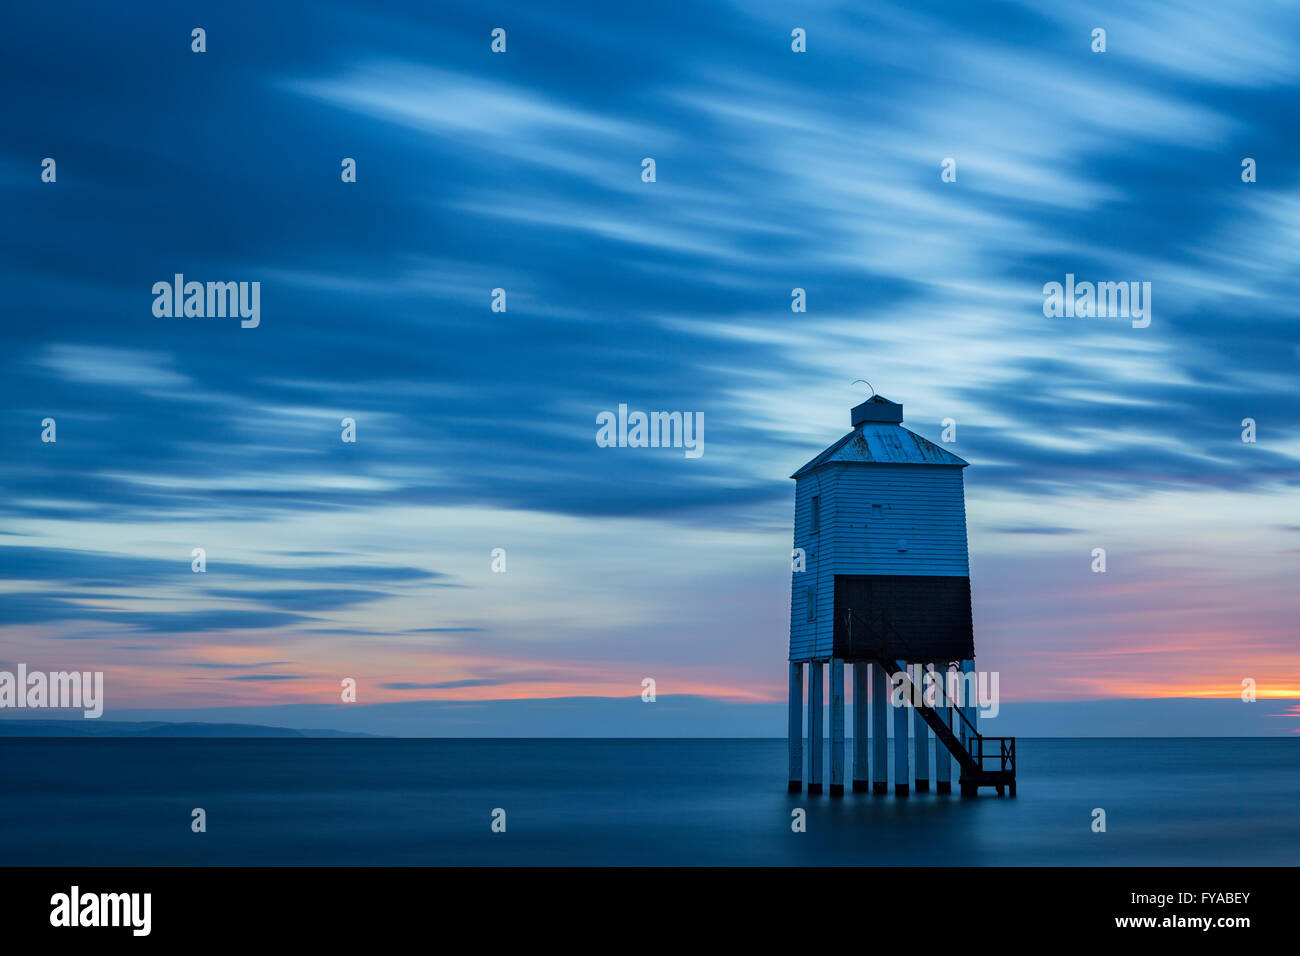 The lighthouse at Burnham-on-sea, Somerset, stands silhouetted against a pink and blue sky at sunset. Stock Photo